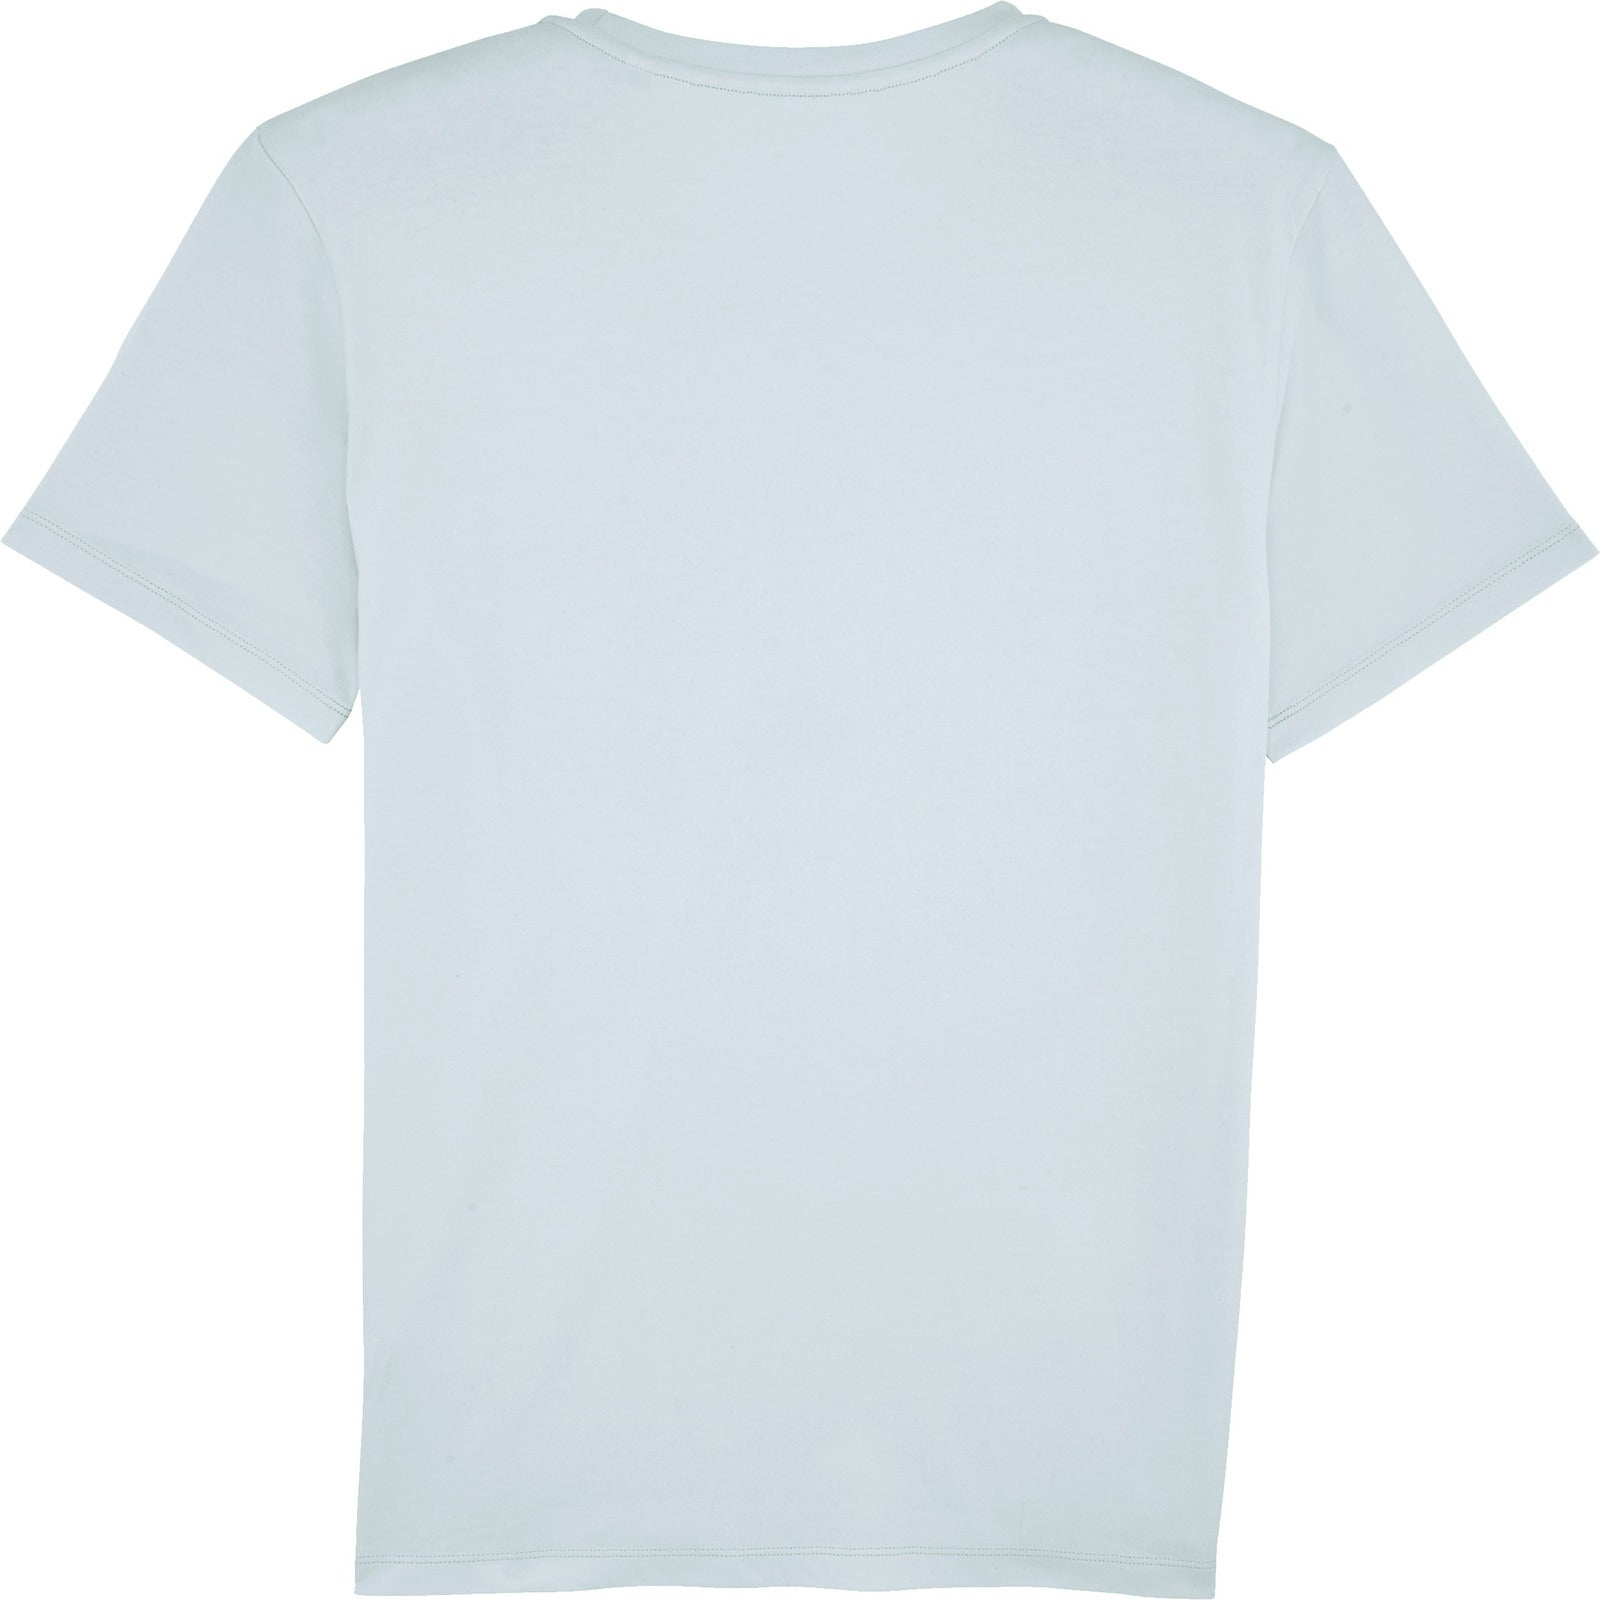 T-SHIRT REGULAR FIT [BABY BLAU]